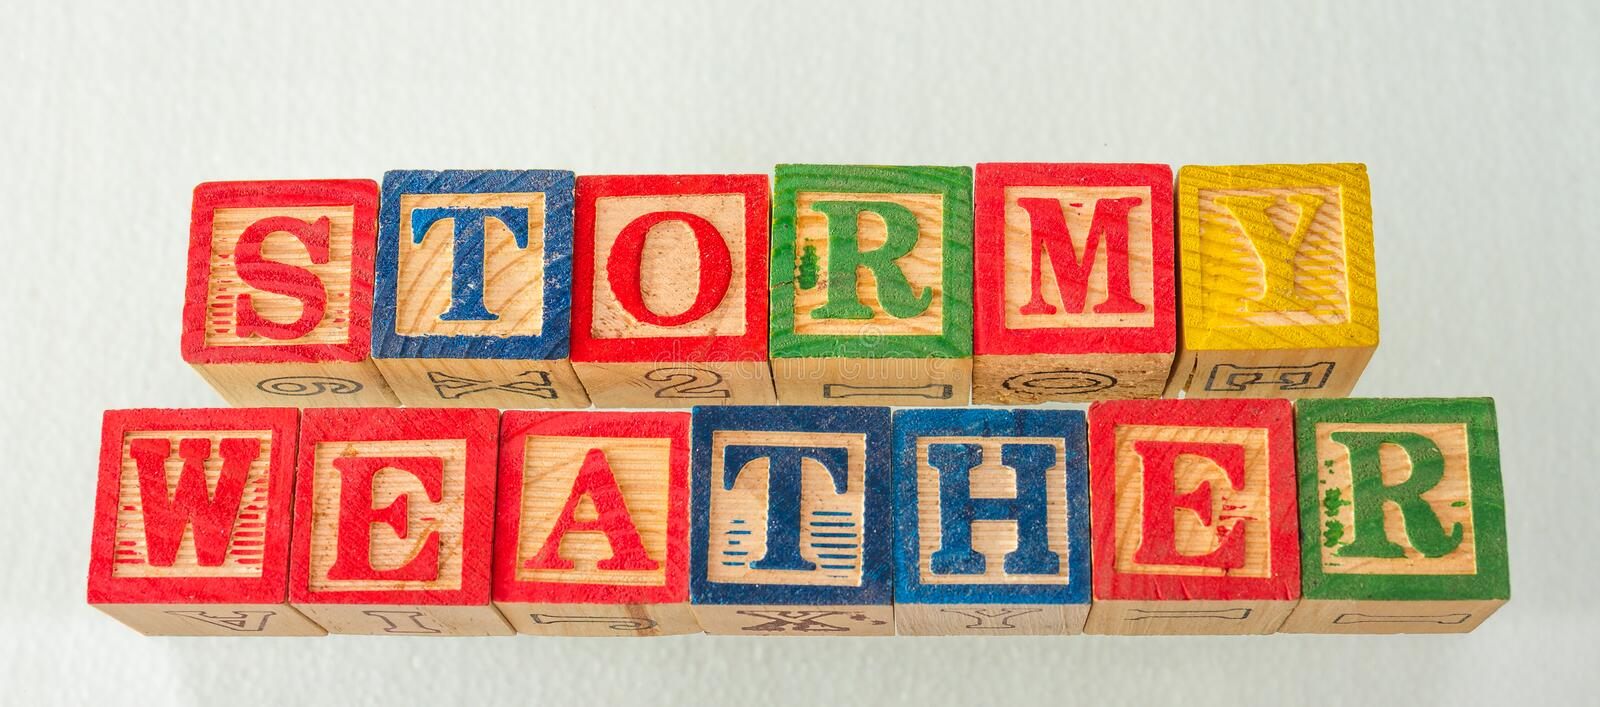 The term stormy weather visually displayed. On a white background using colorful wooden blocks image in landscape format royalty free stock images